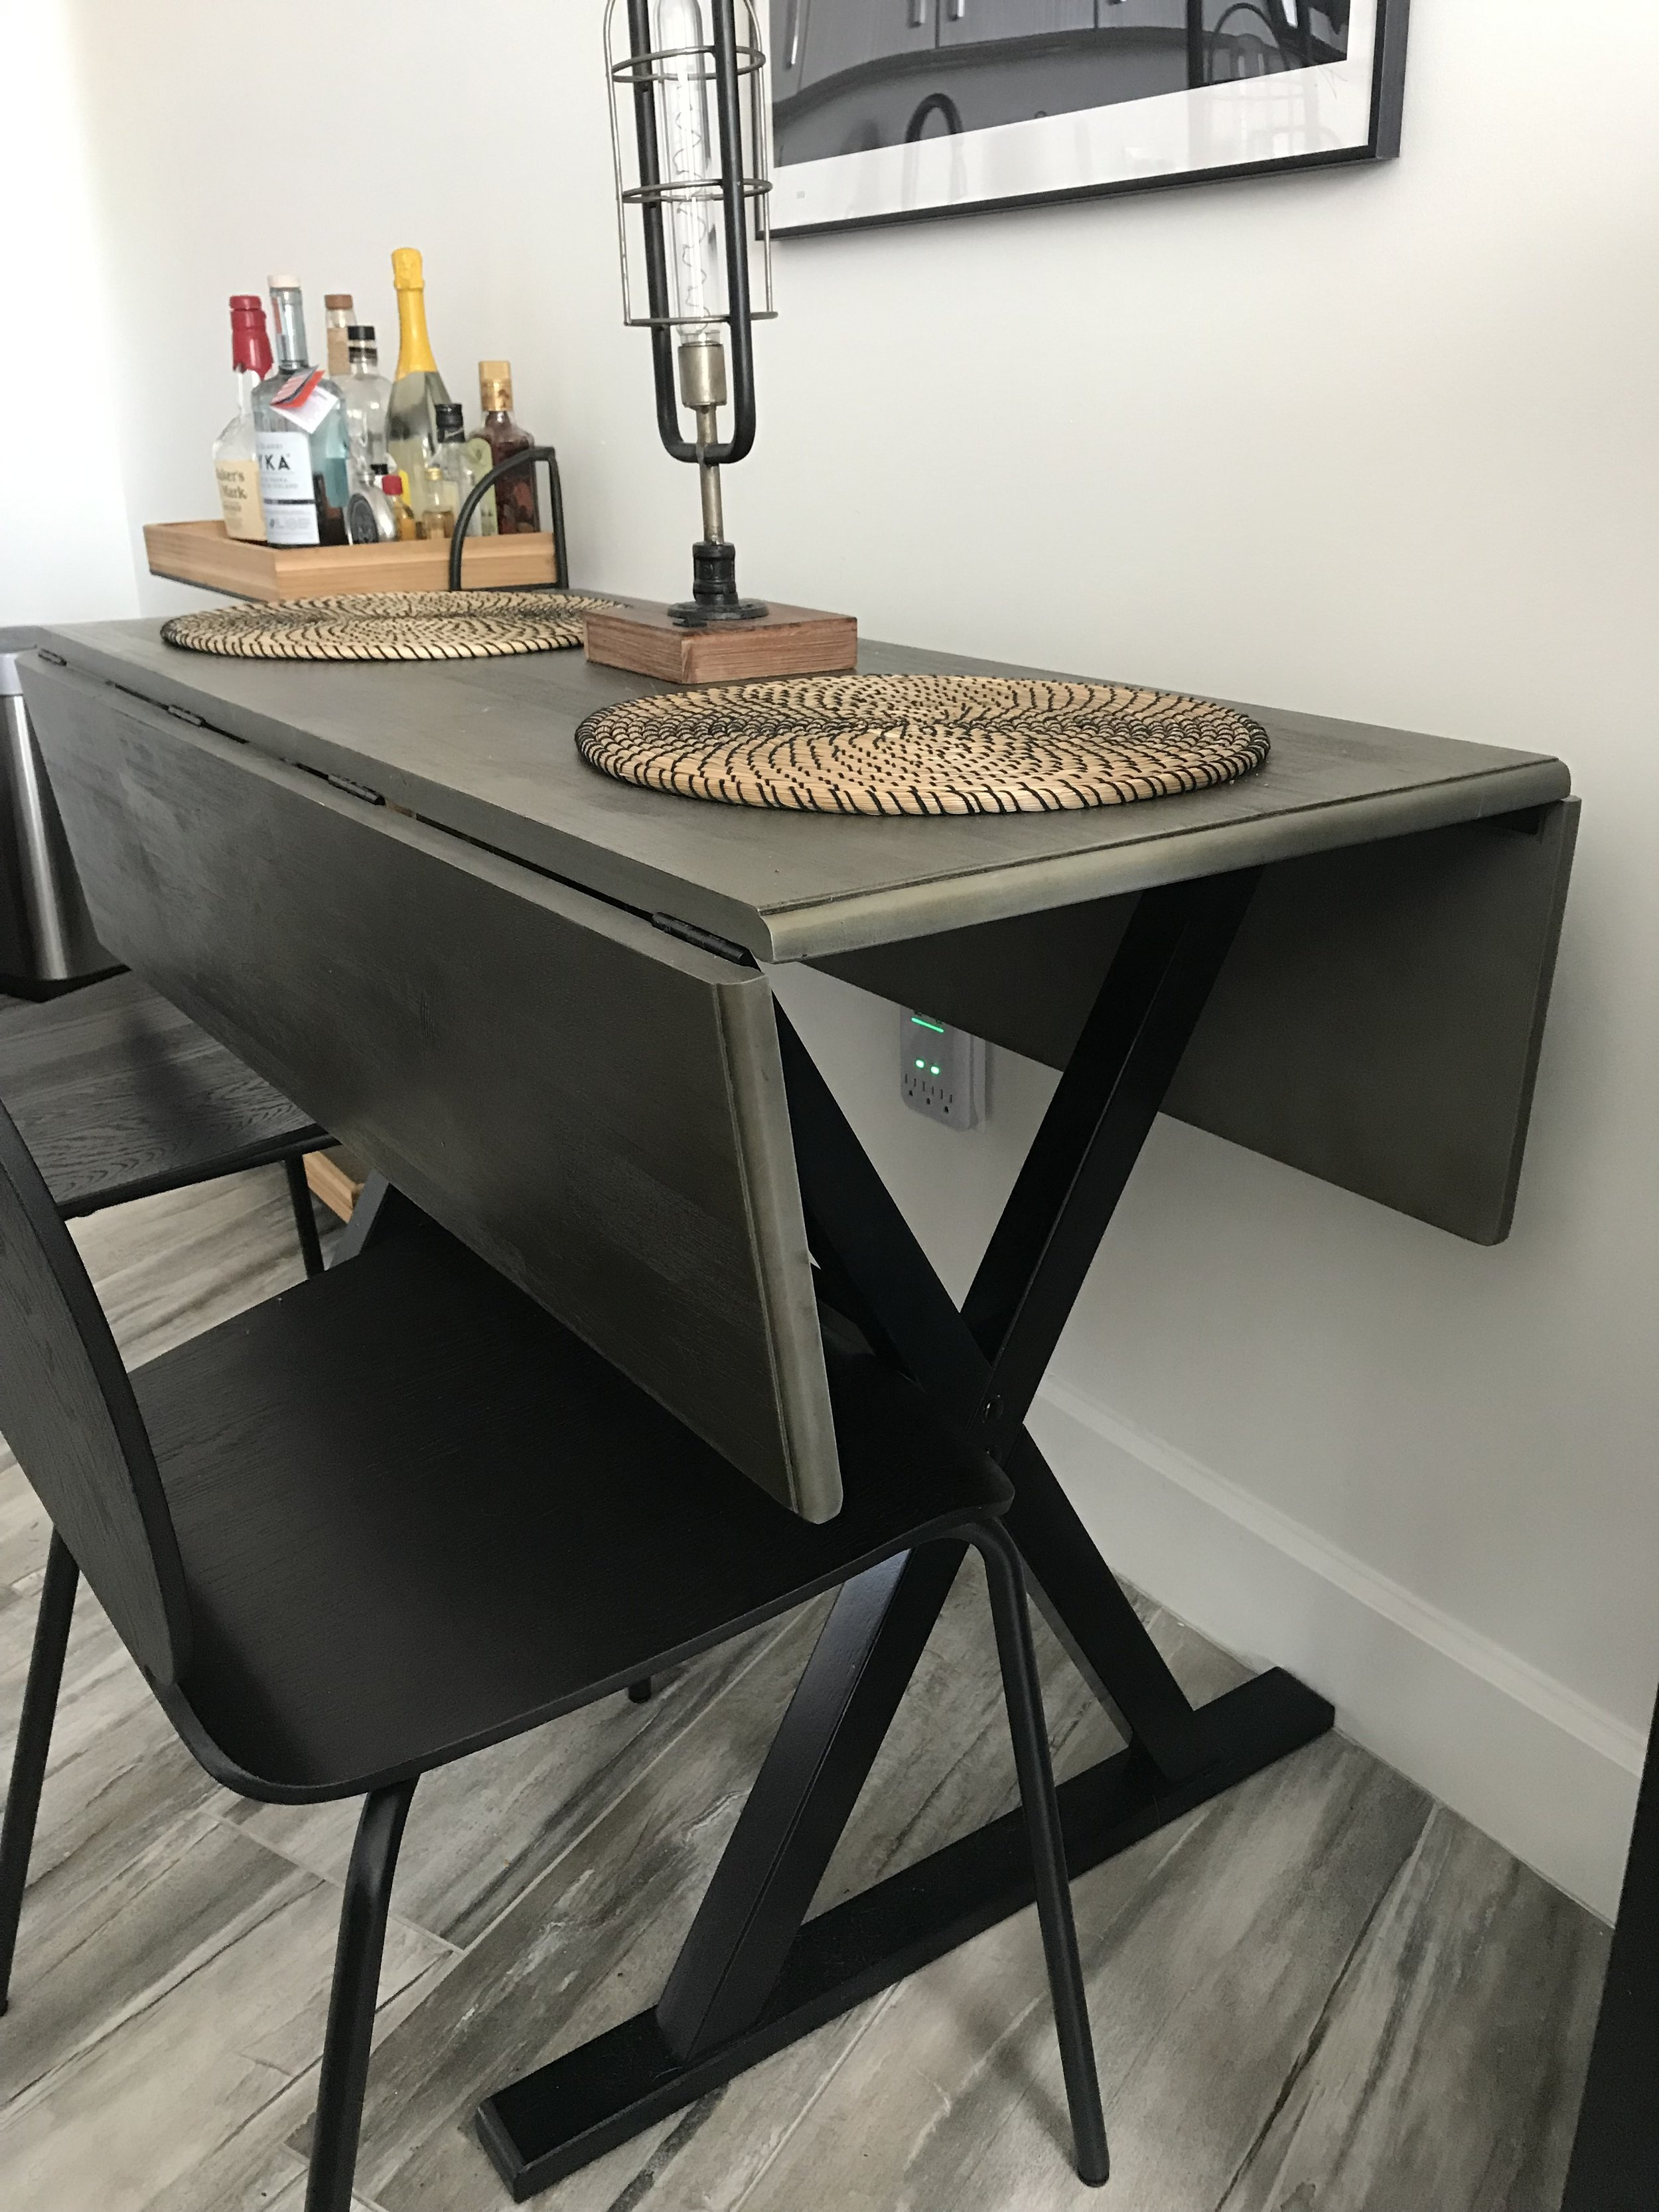 This table comfortably seated six people